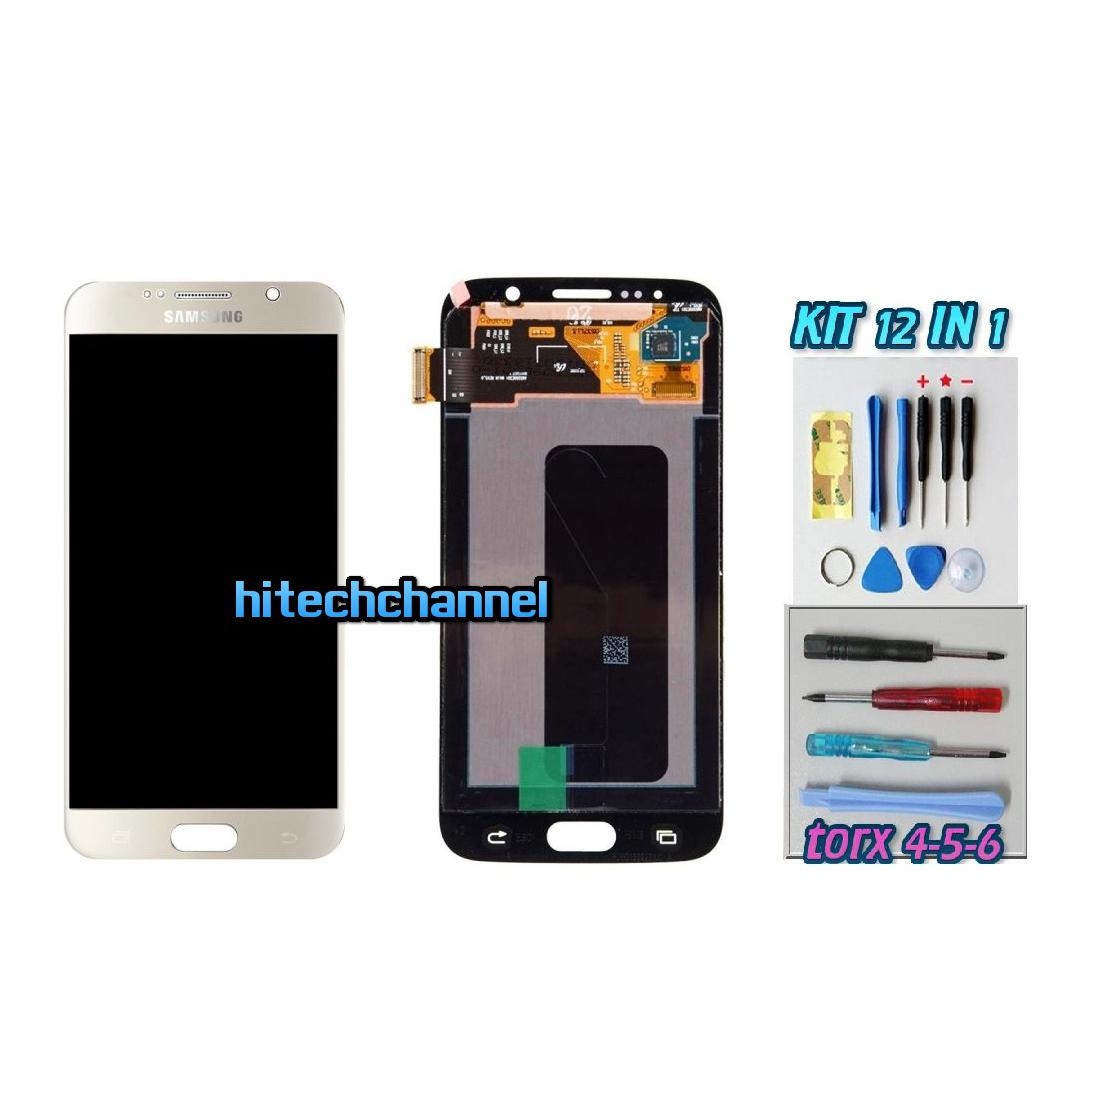 DISPLAY ORIGINALE SERVICE PACK LCD TOUCH SAMSUNG GALAXY S6 G920 ORO GOLD GH97-17260A con kit e biadesivo